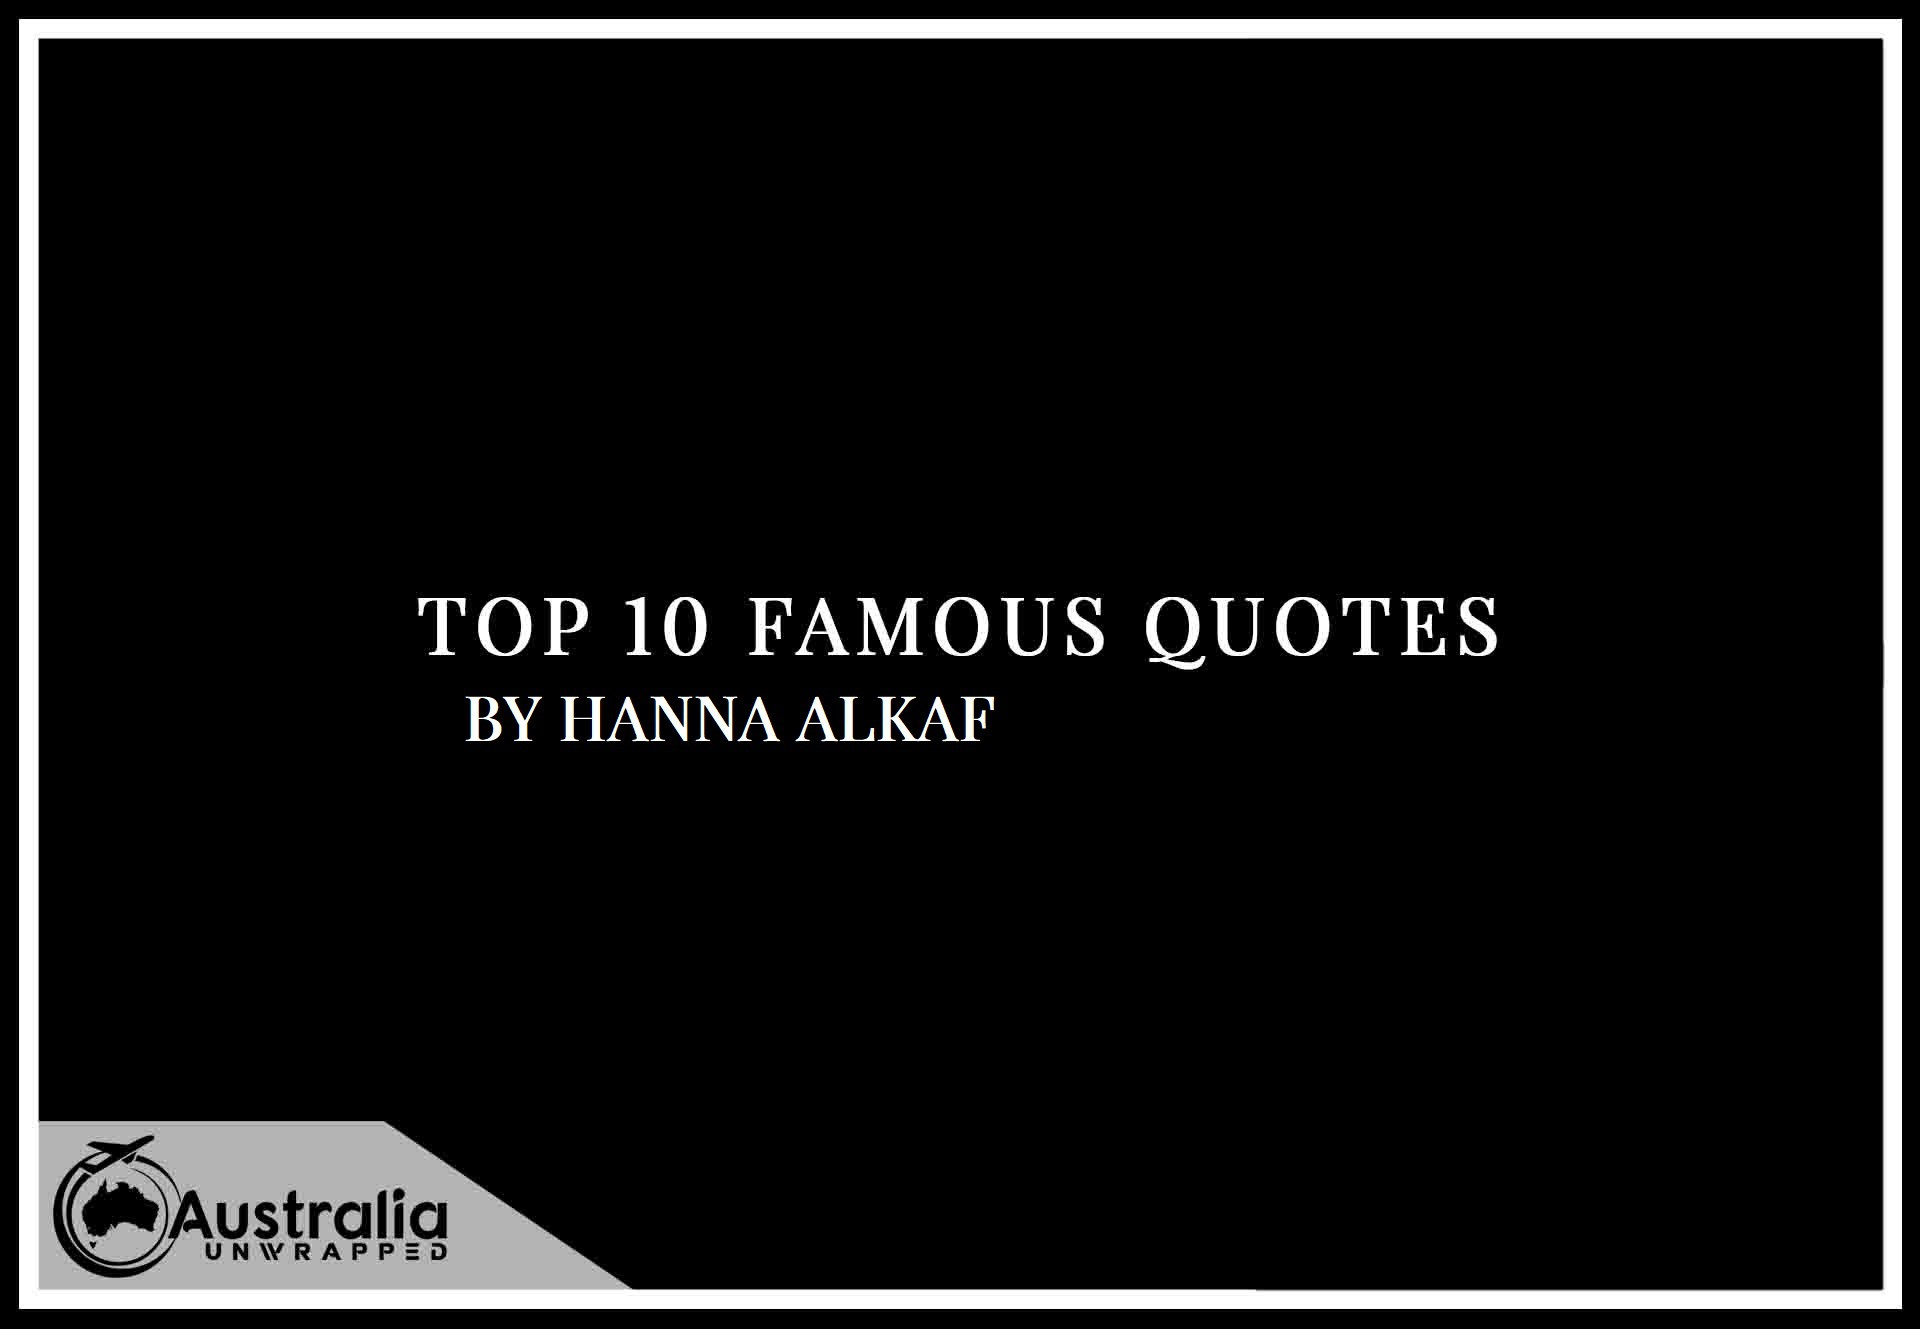 Top 10 Famous Quotes by Author Hanna Alkaf